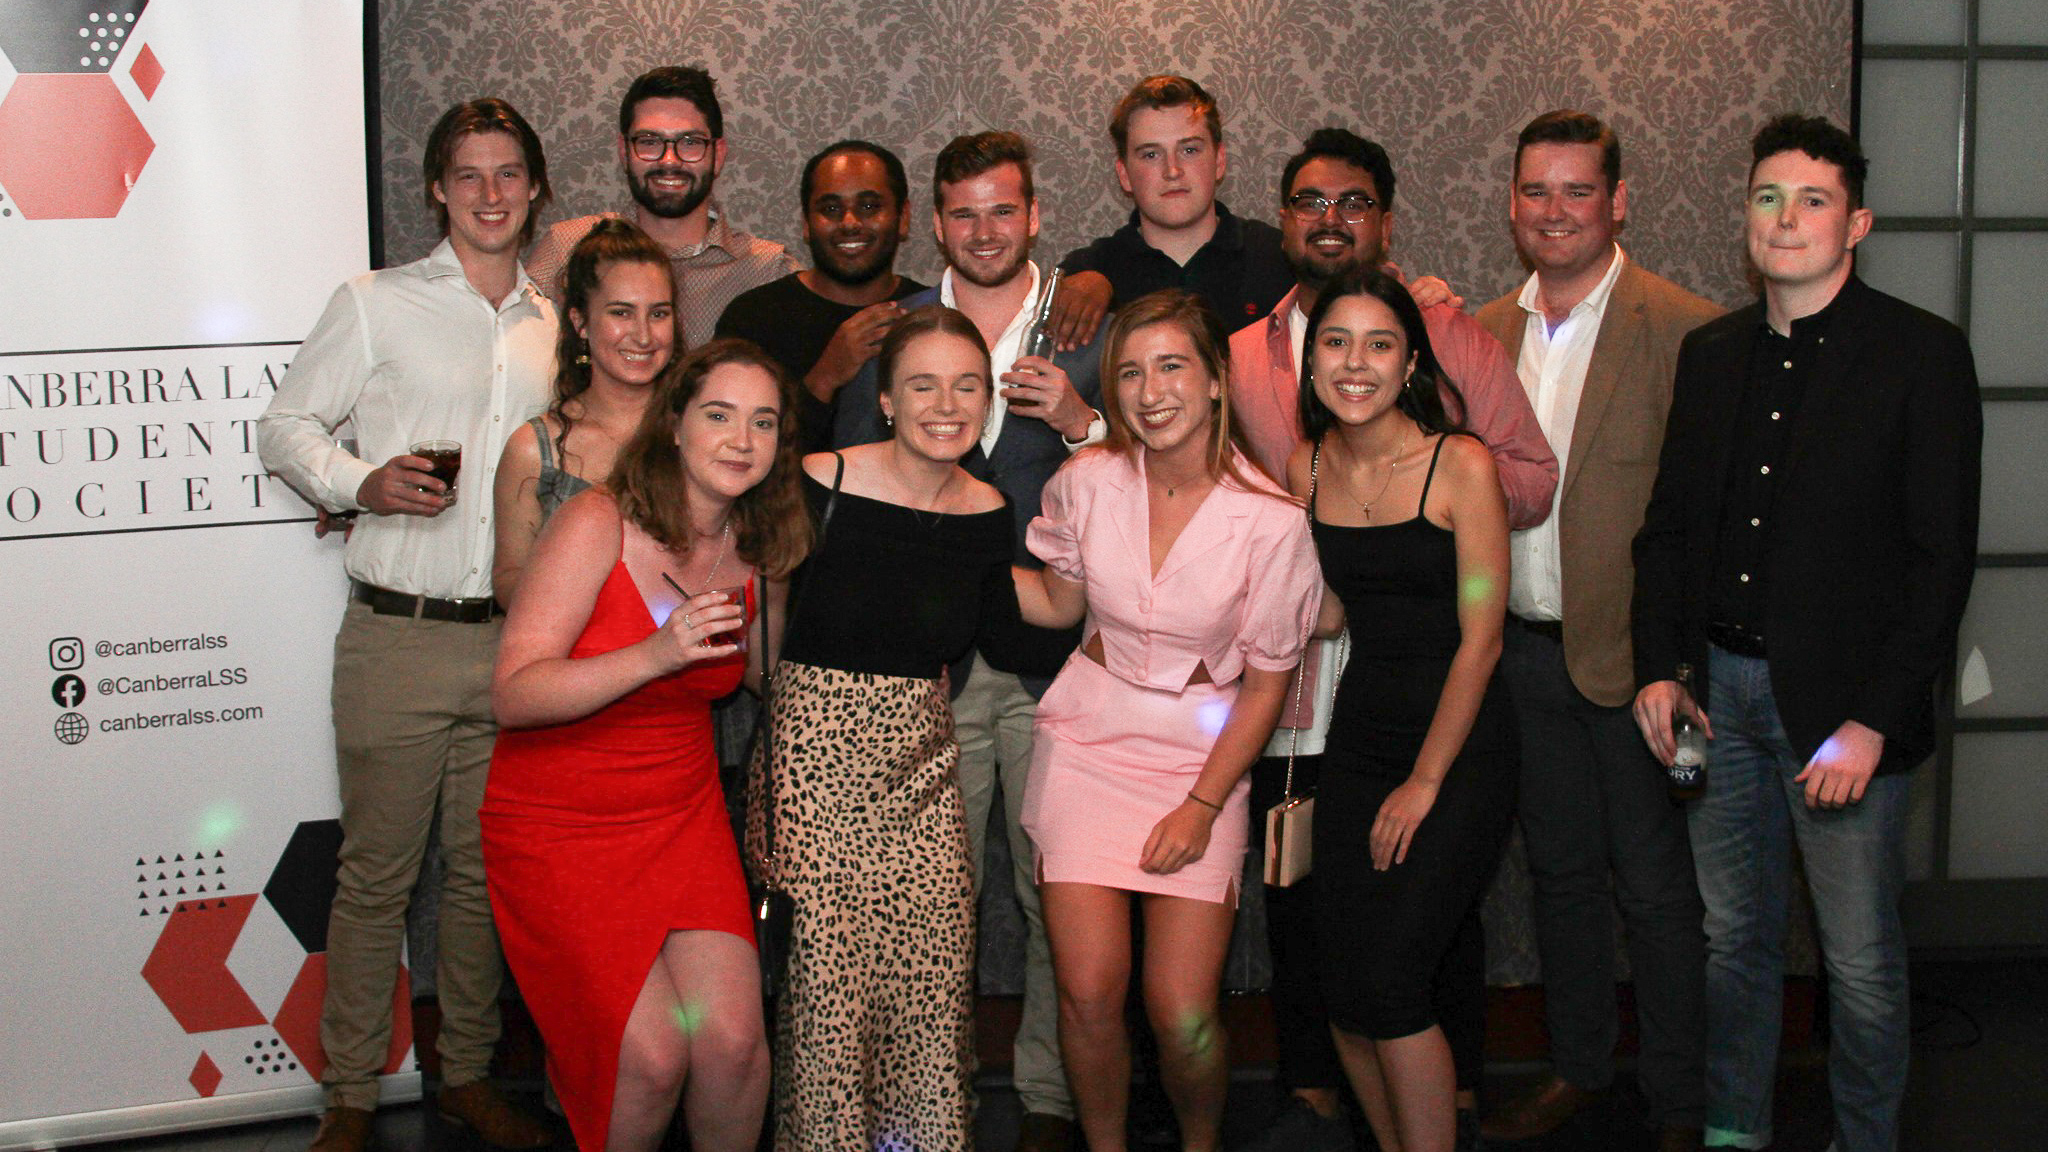 UC Economics Society members pose for group photo at social event